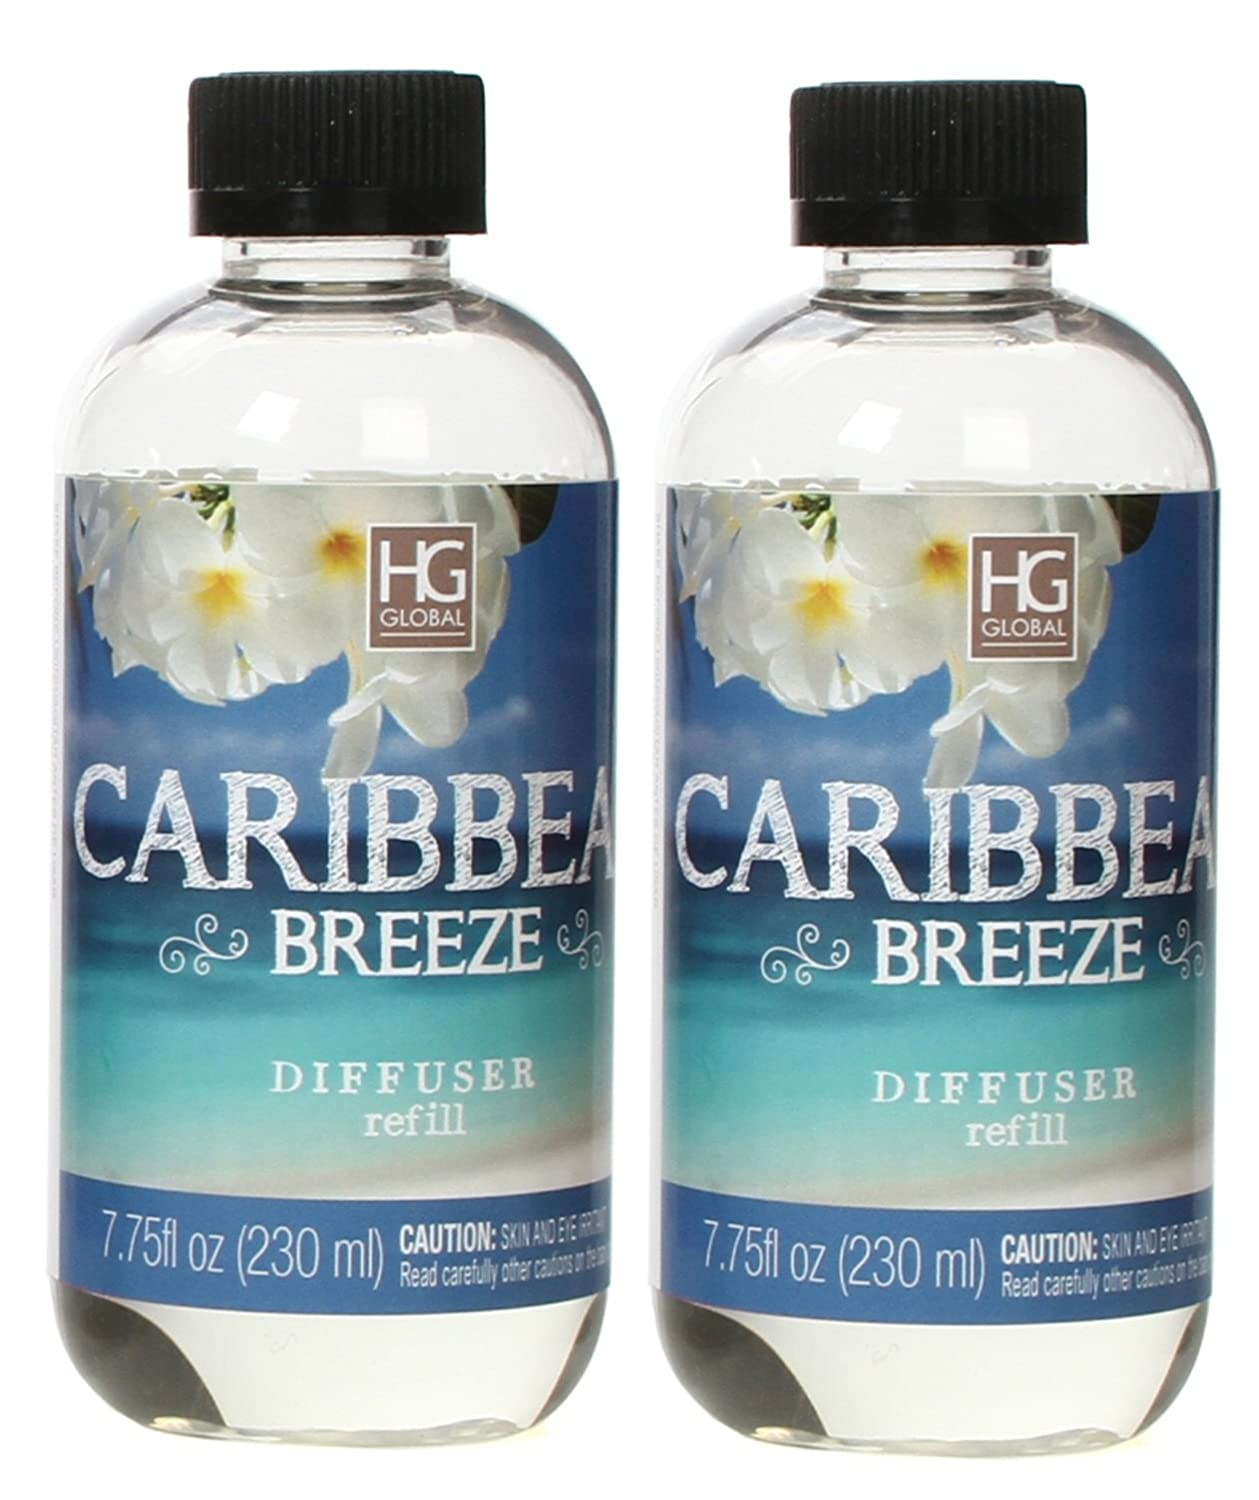 Hosley's Set of 2 Premium Caribbean Breeze Reed Diffuser Refills Oil, 230 ml (7.75 fl oz) Made in USA.. BULK BUY. Ideal GIFT for weddings, spa, Reiki, Meditation settings W1 HG Global AMZ-BS52857WD-1-EA